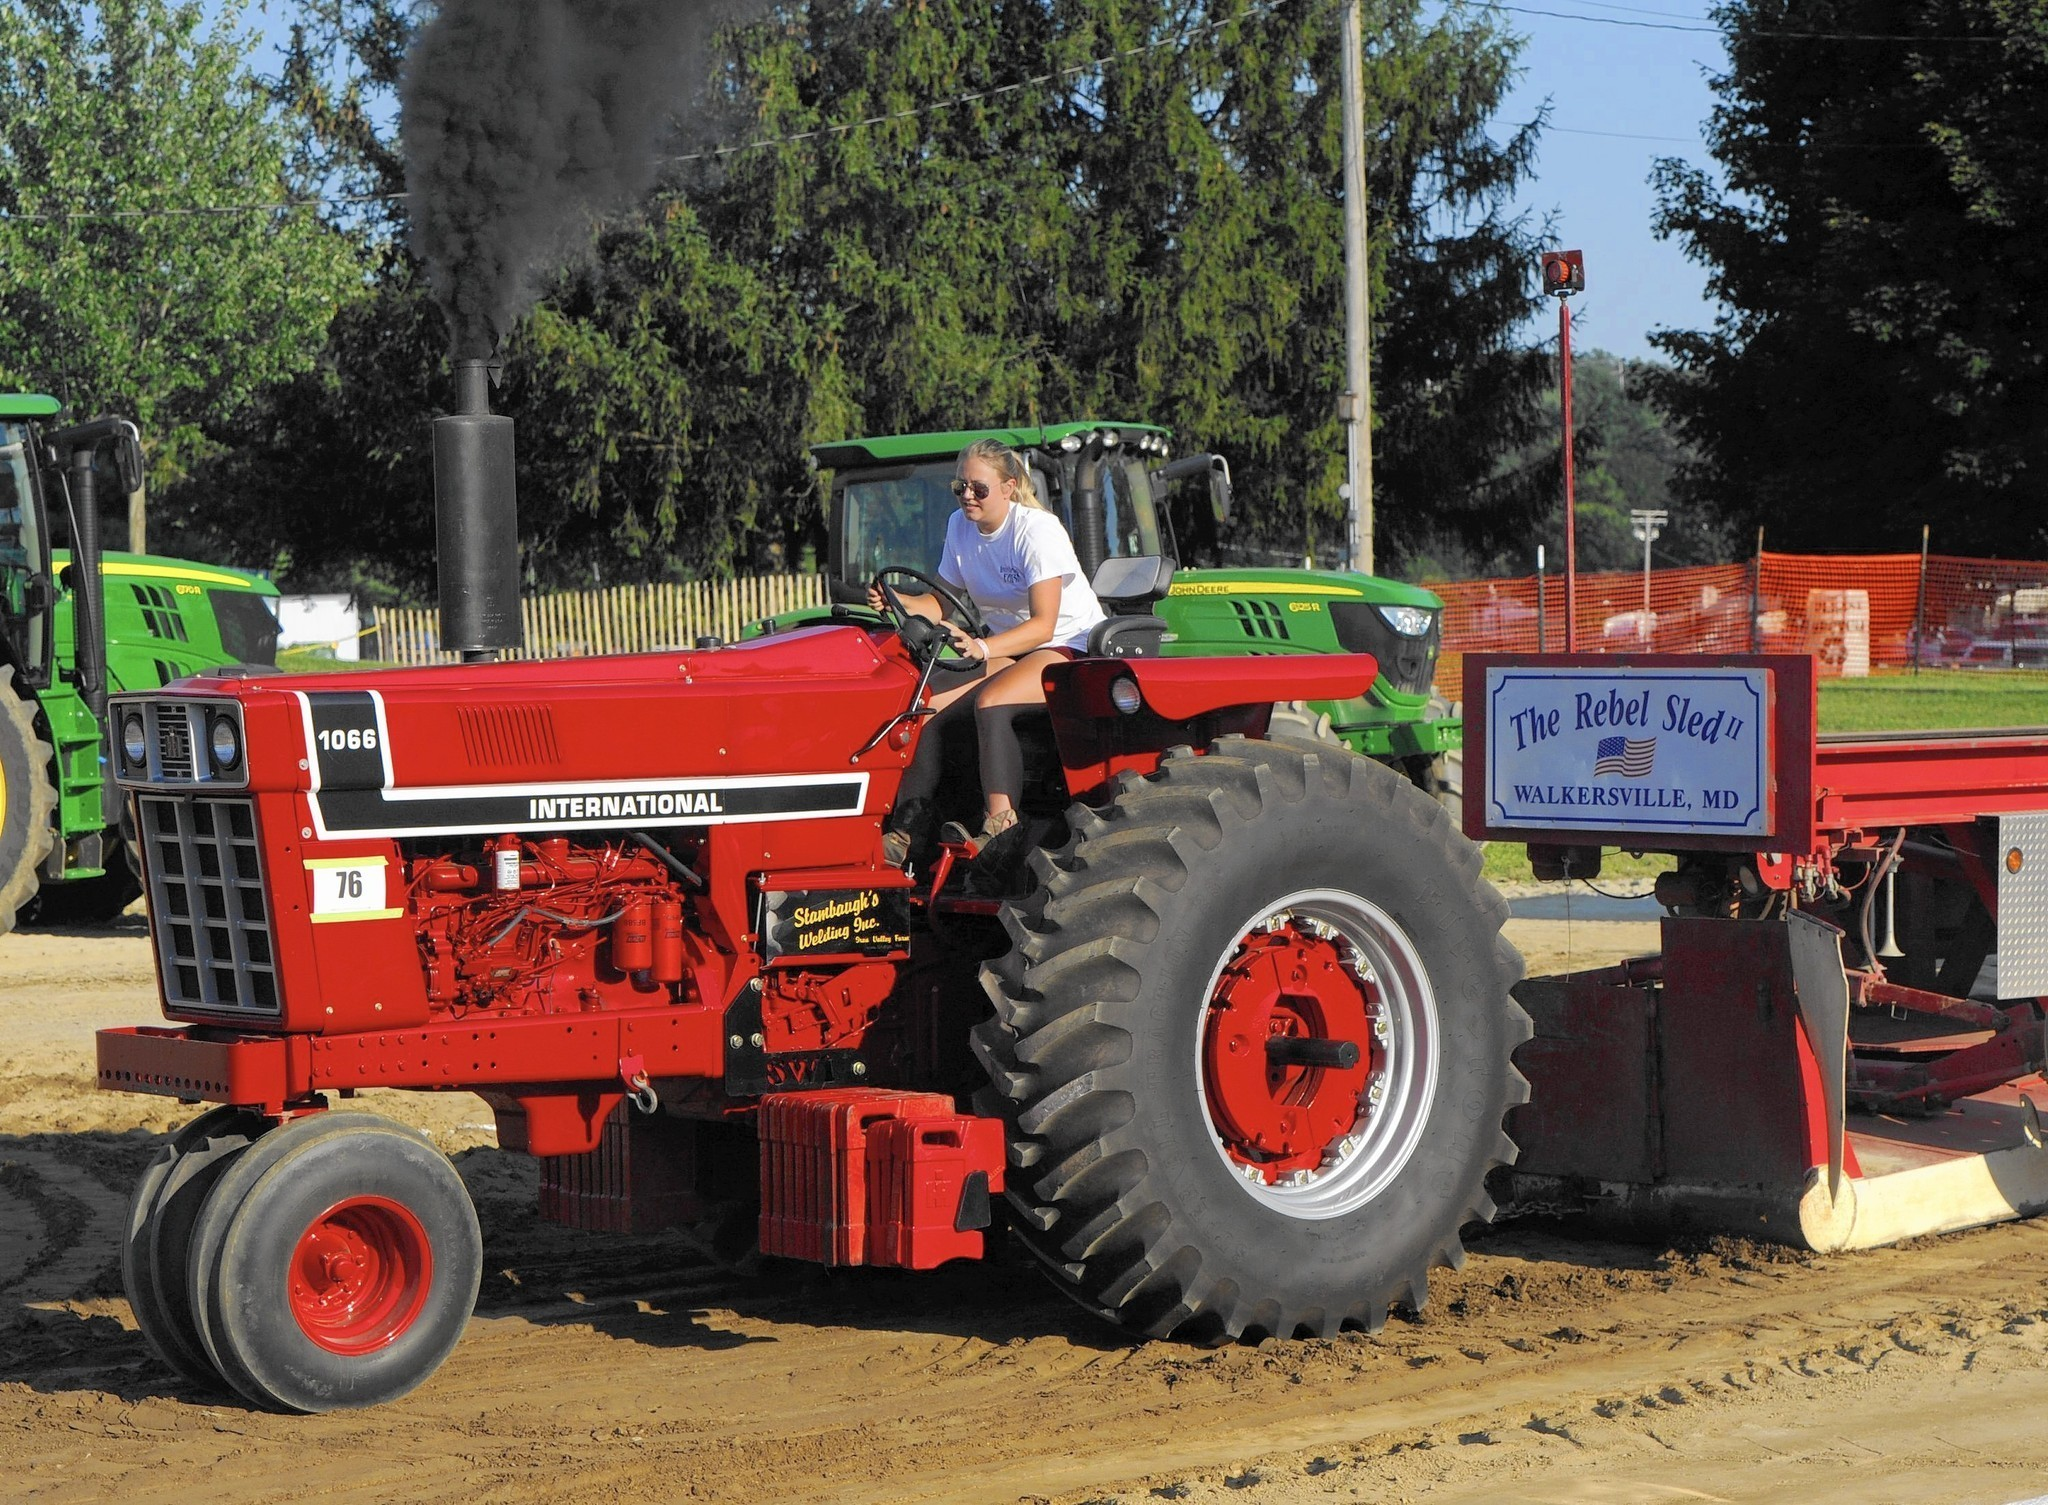 Tractor Pulling Tractor : For some tractor pull is a family tradition carroll